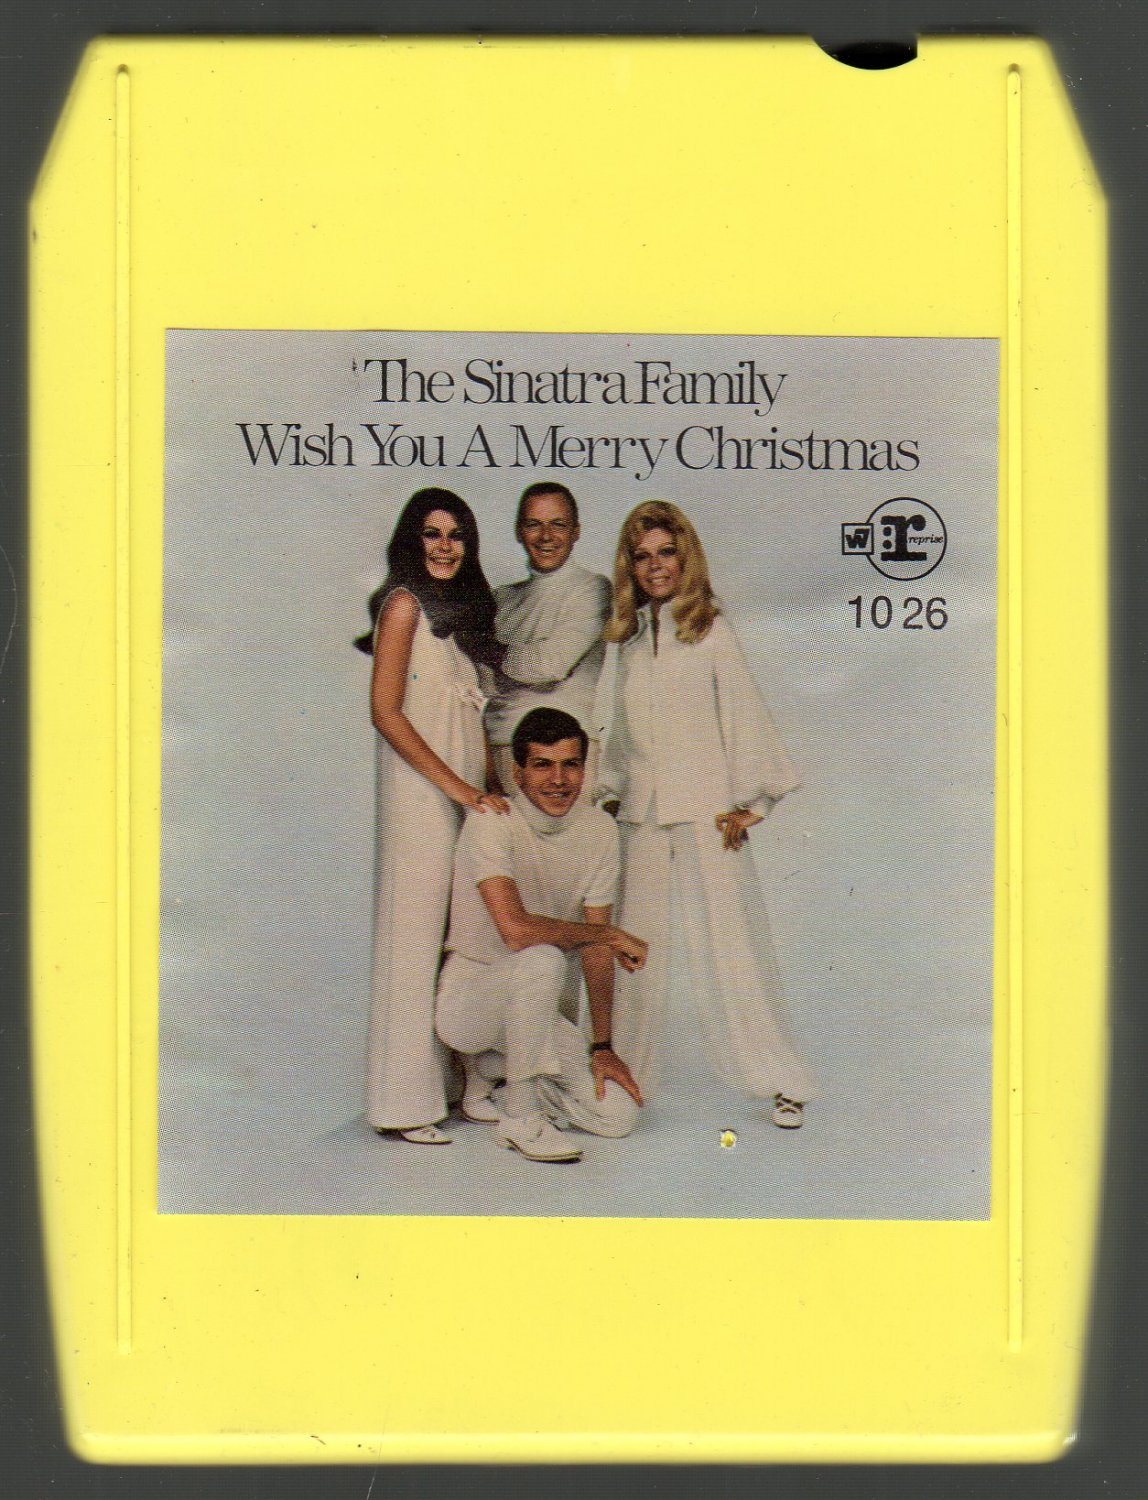 The Sinatra Family - Wish You A Merry Christmas 1968 REPRISE 8-track tape